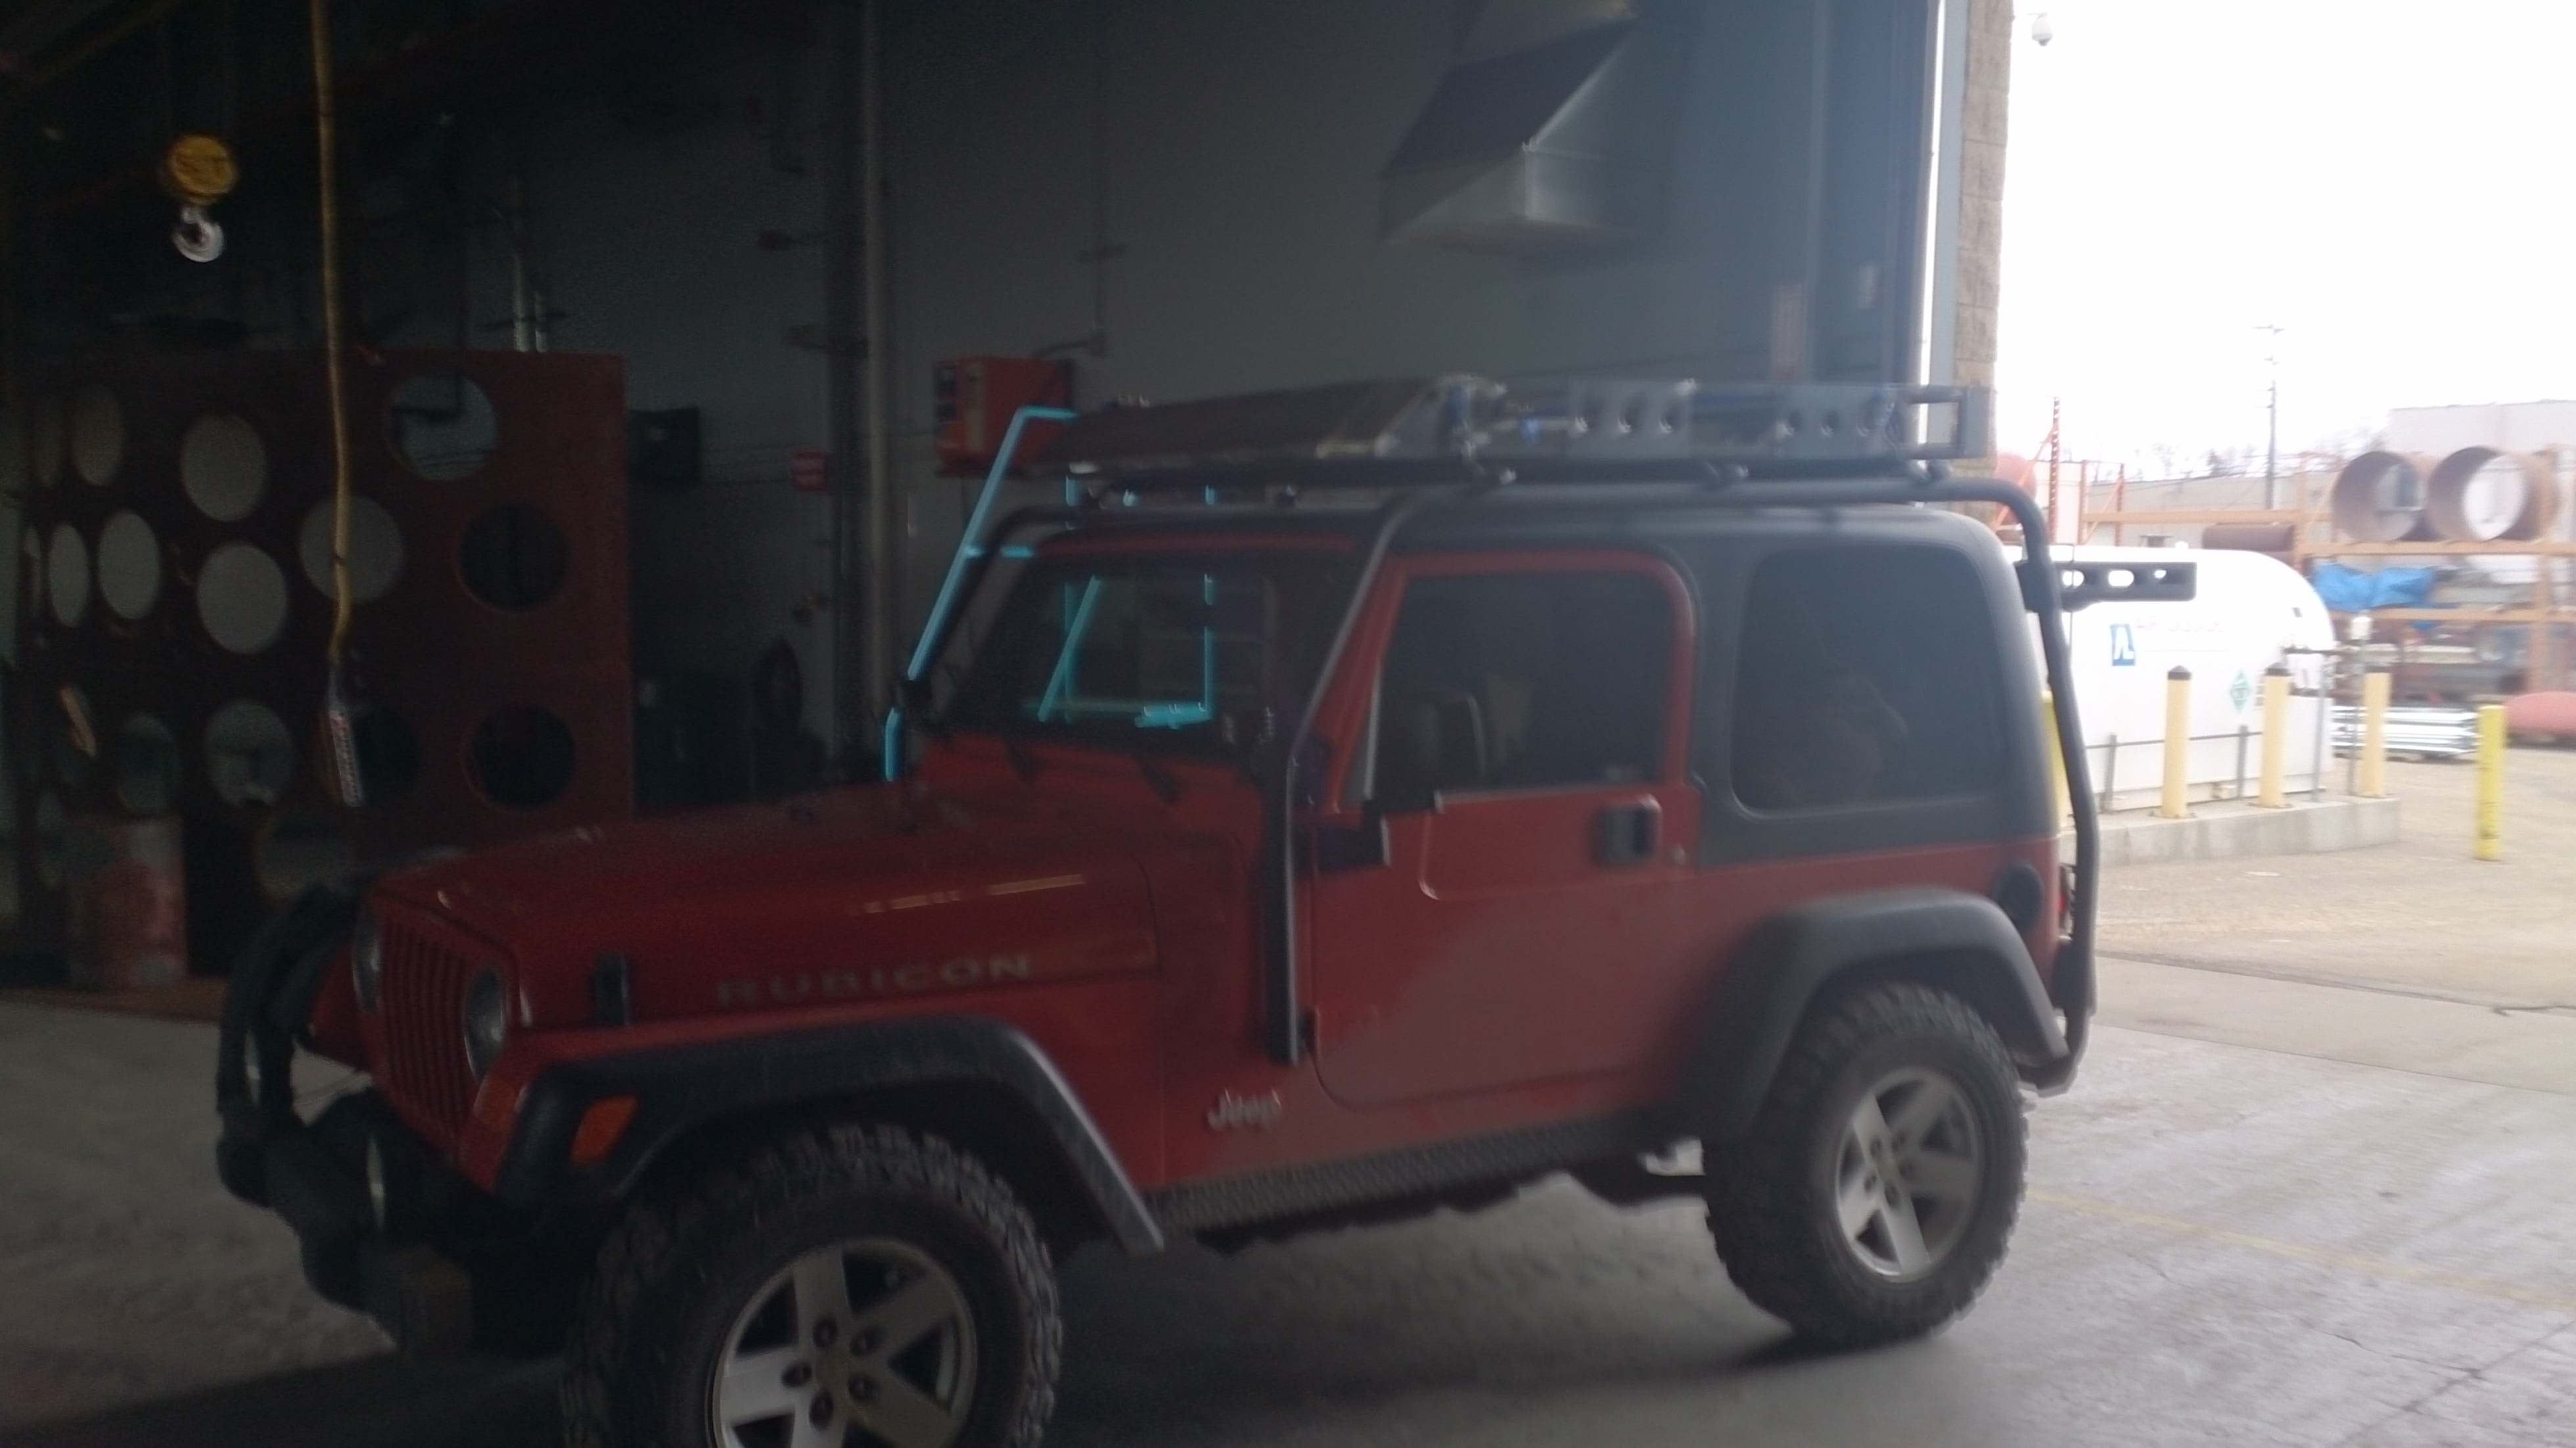 cherokee roof rack inch lift pin tires homemade jeep